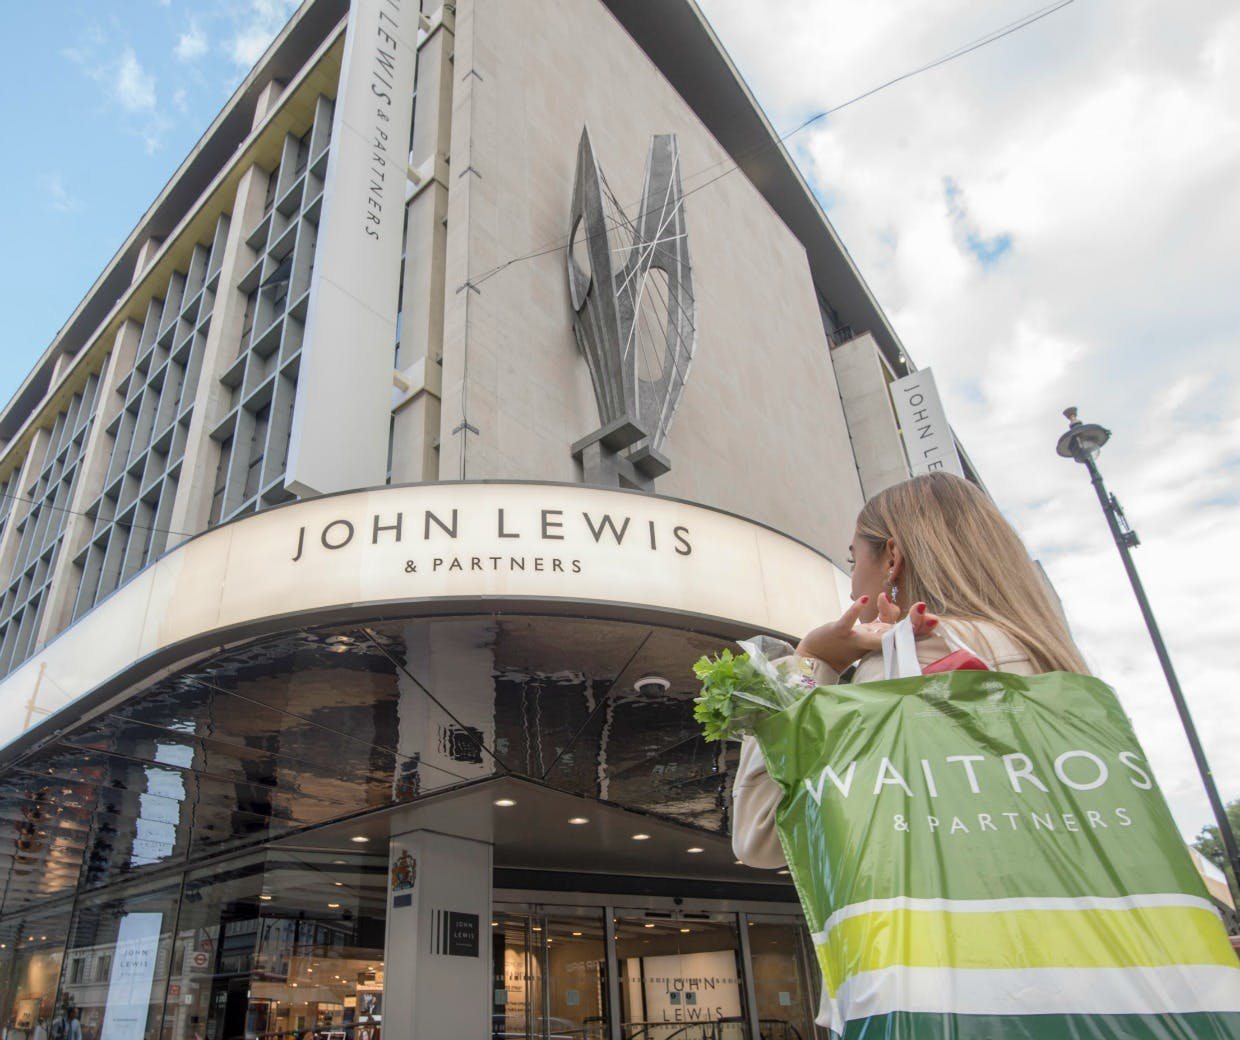 John Lewis, Three, Ovo: 5 things that mattered this week and why